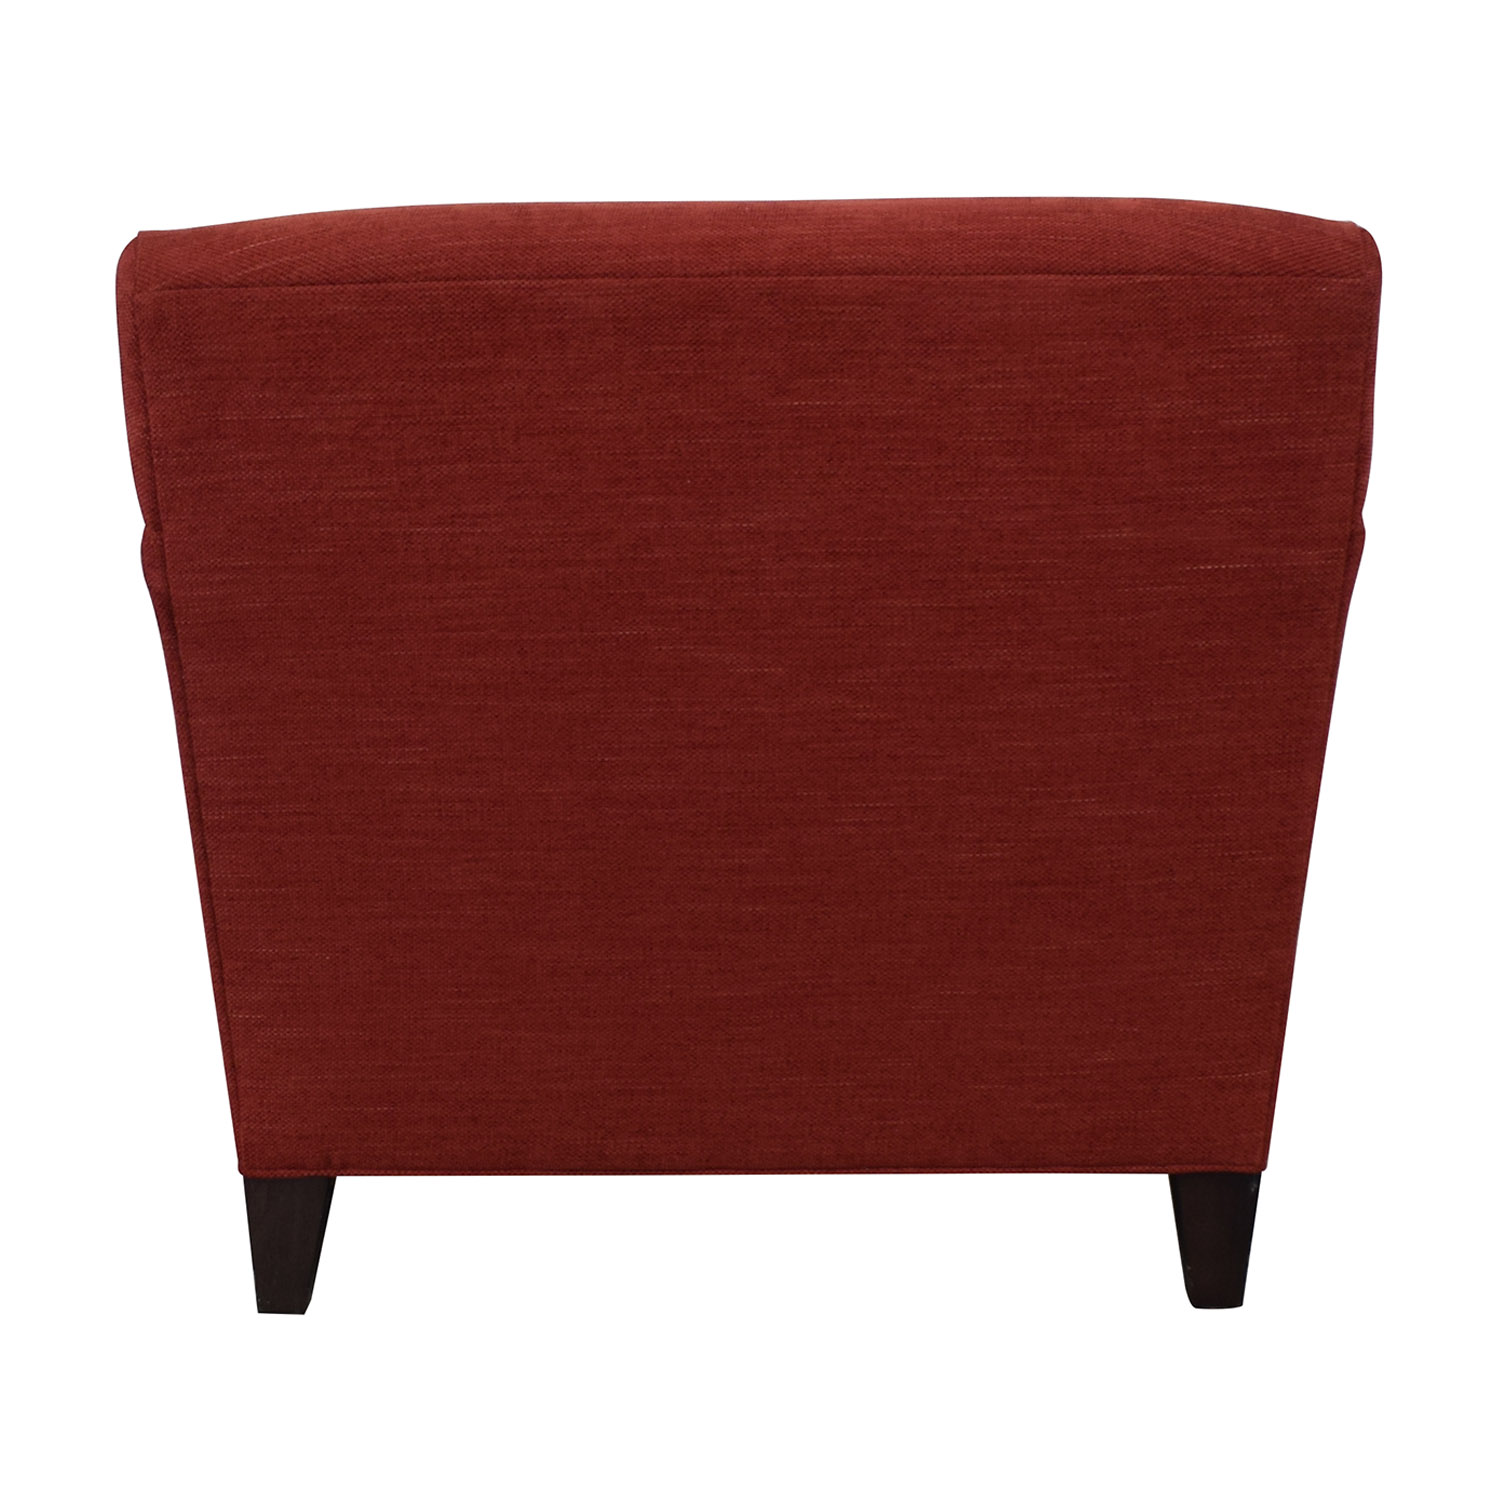 Crate & Barrel Crate & Barrel Hennessy Arm Chair for sale